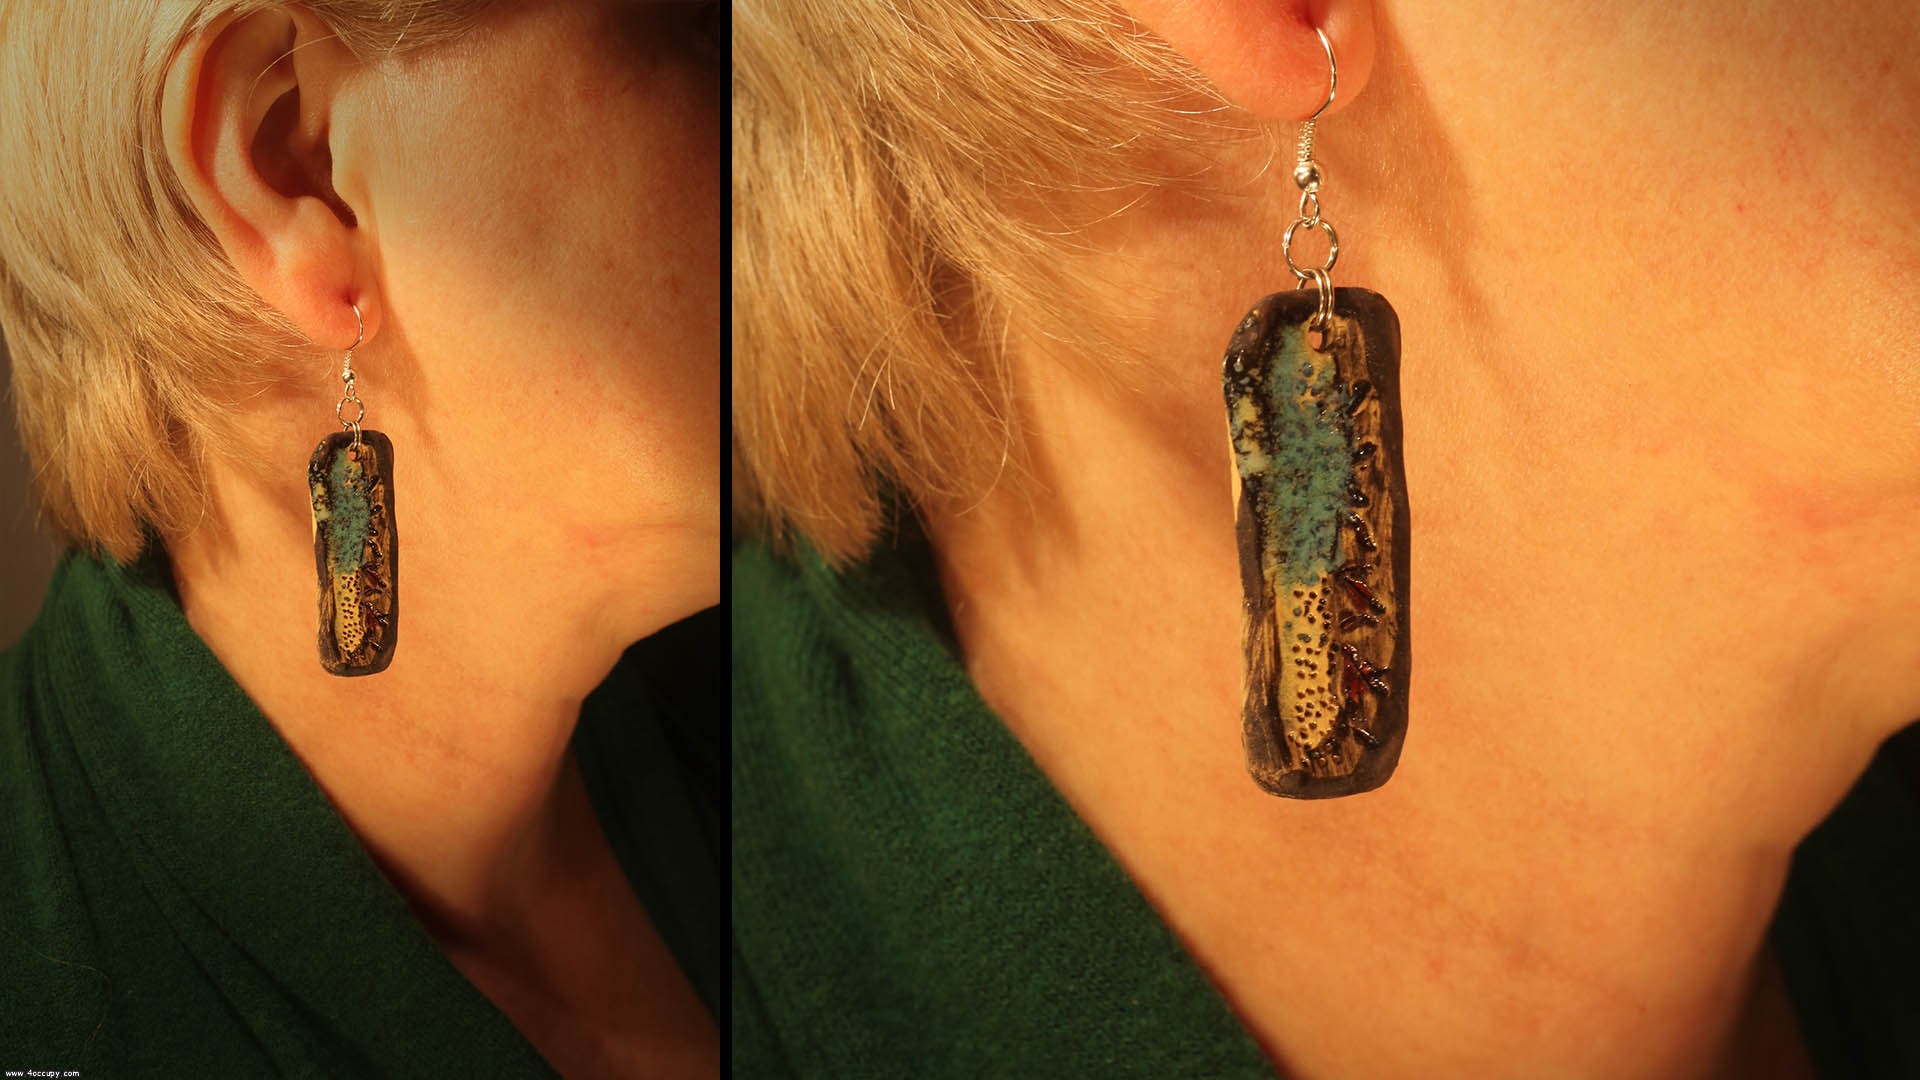 Handcrafted oblong ceramic earrings